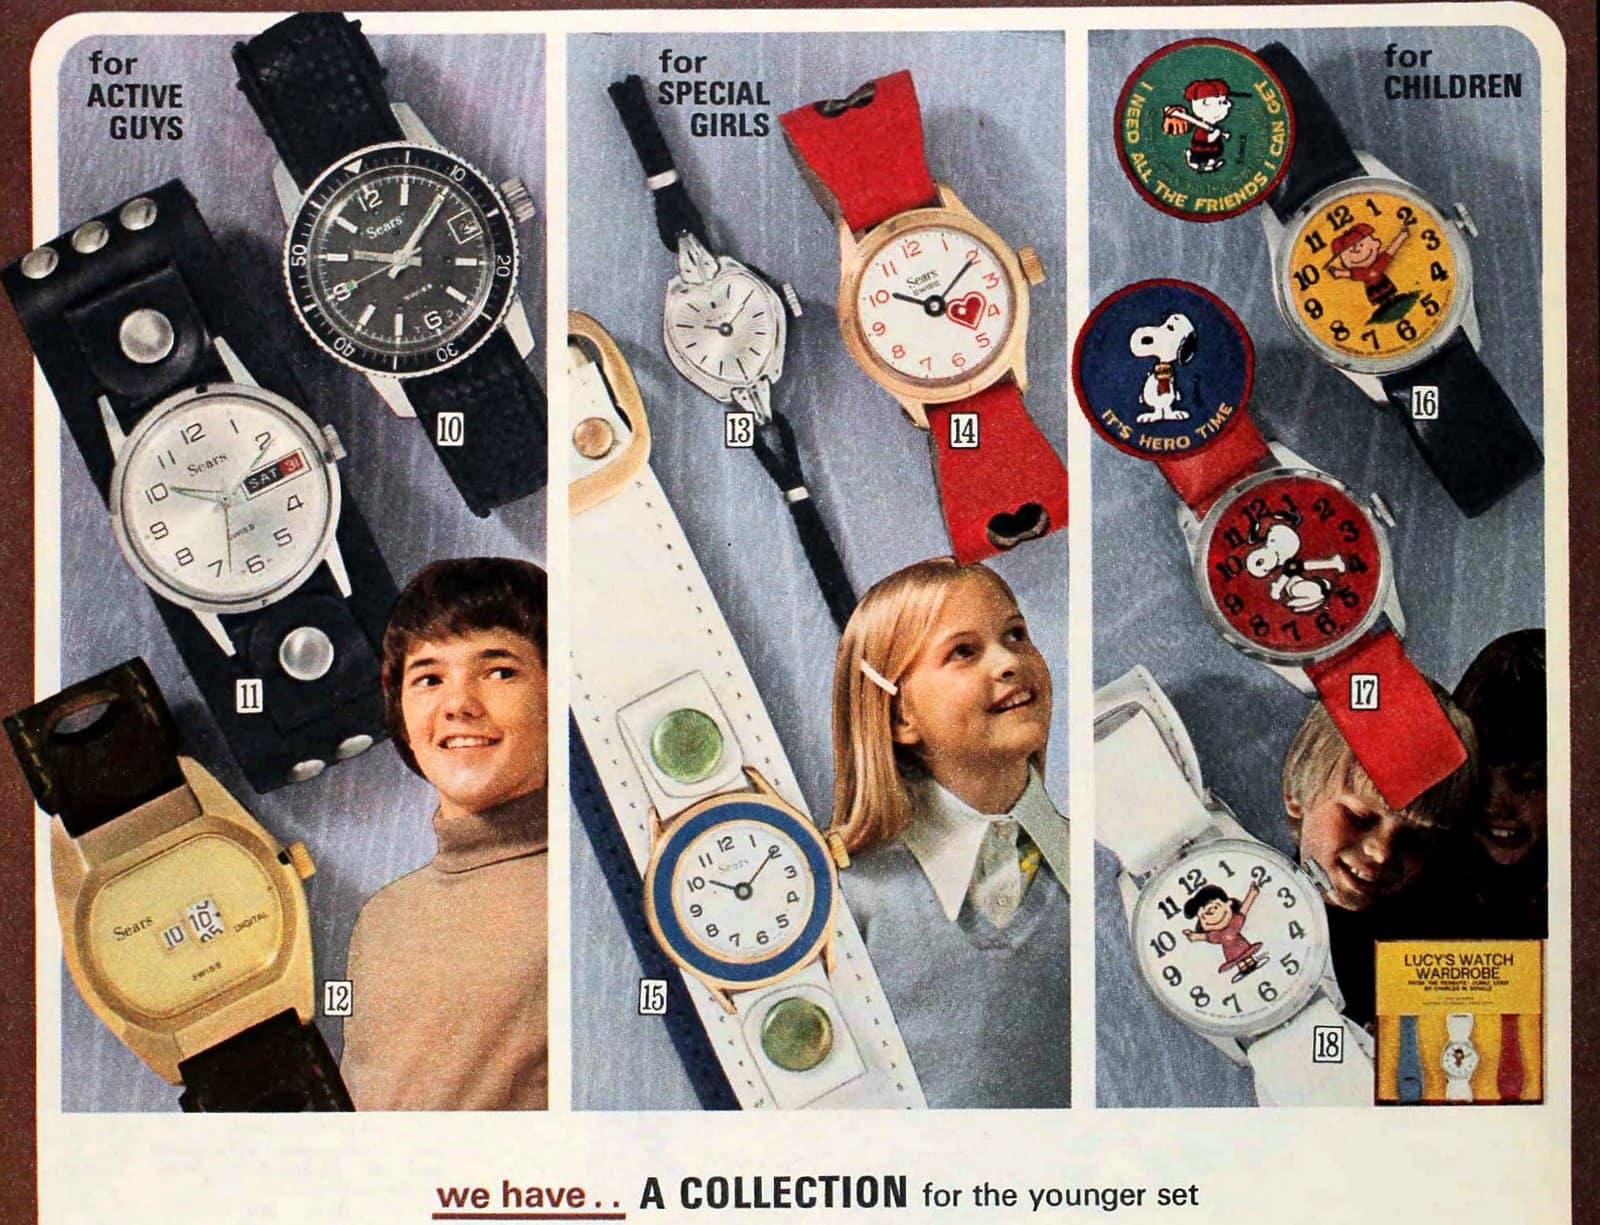 Vintage watches for kids (1974)